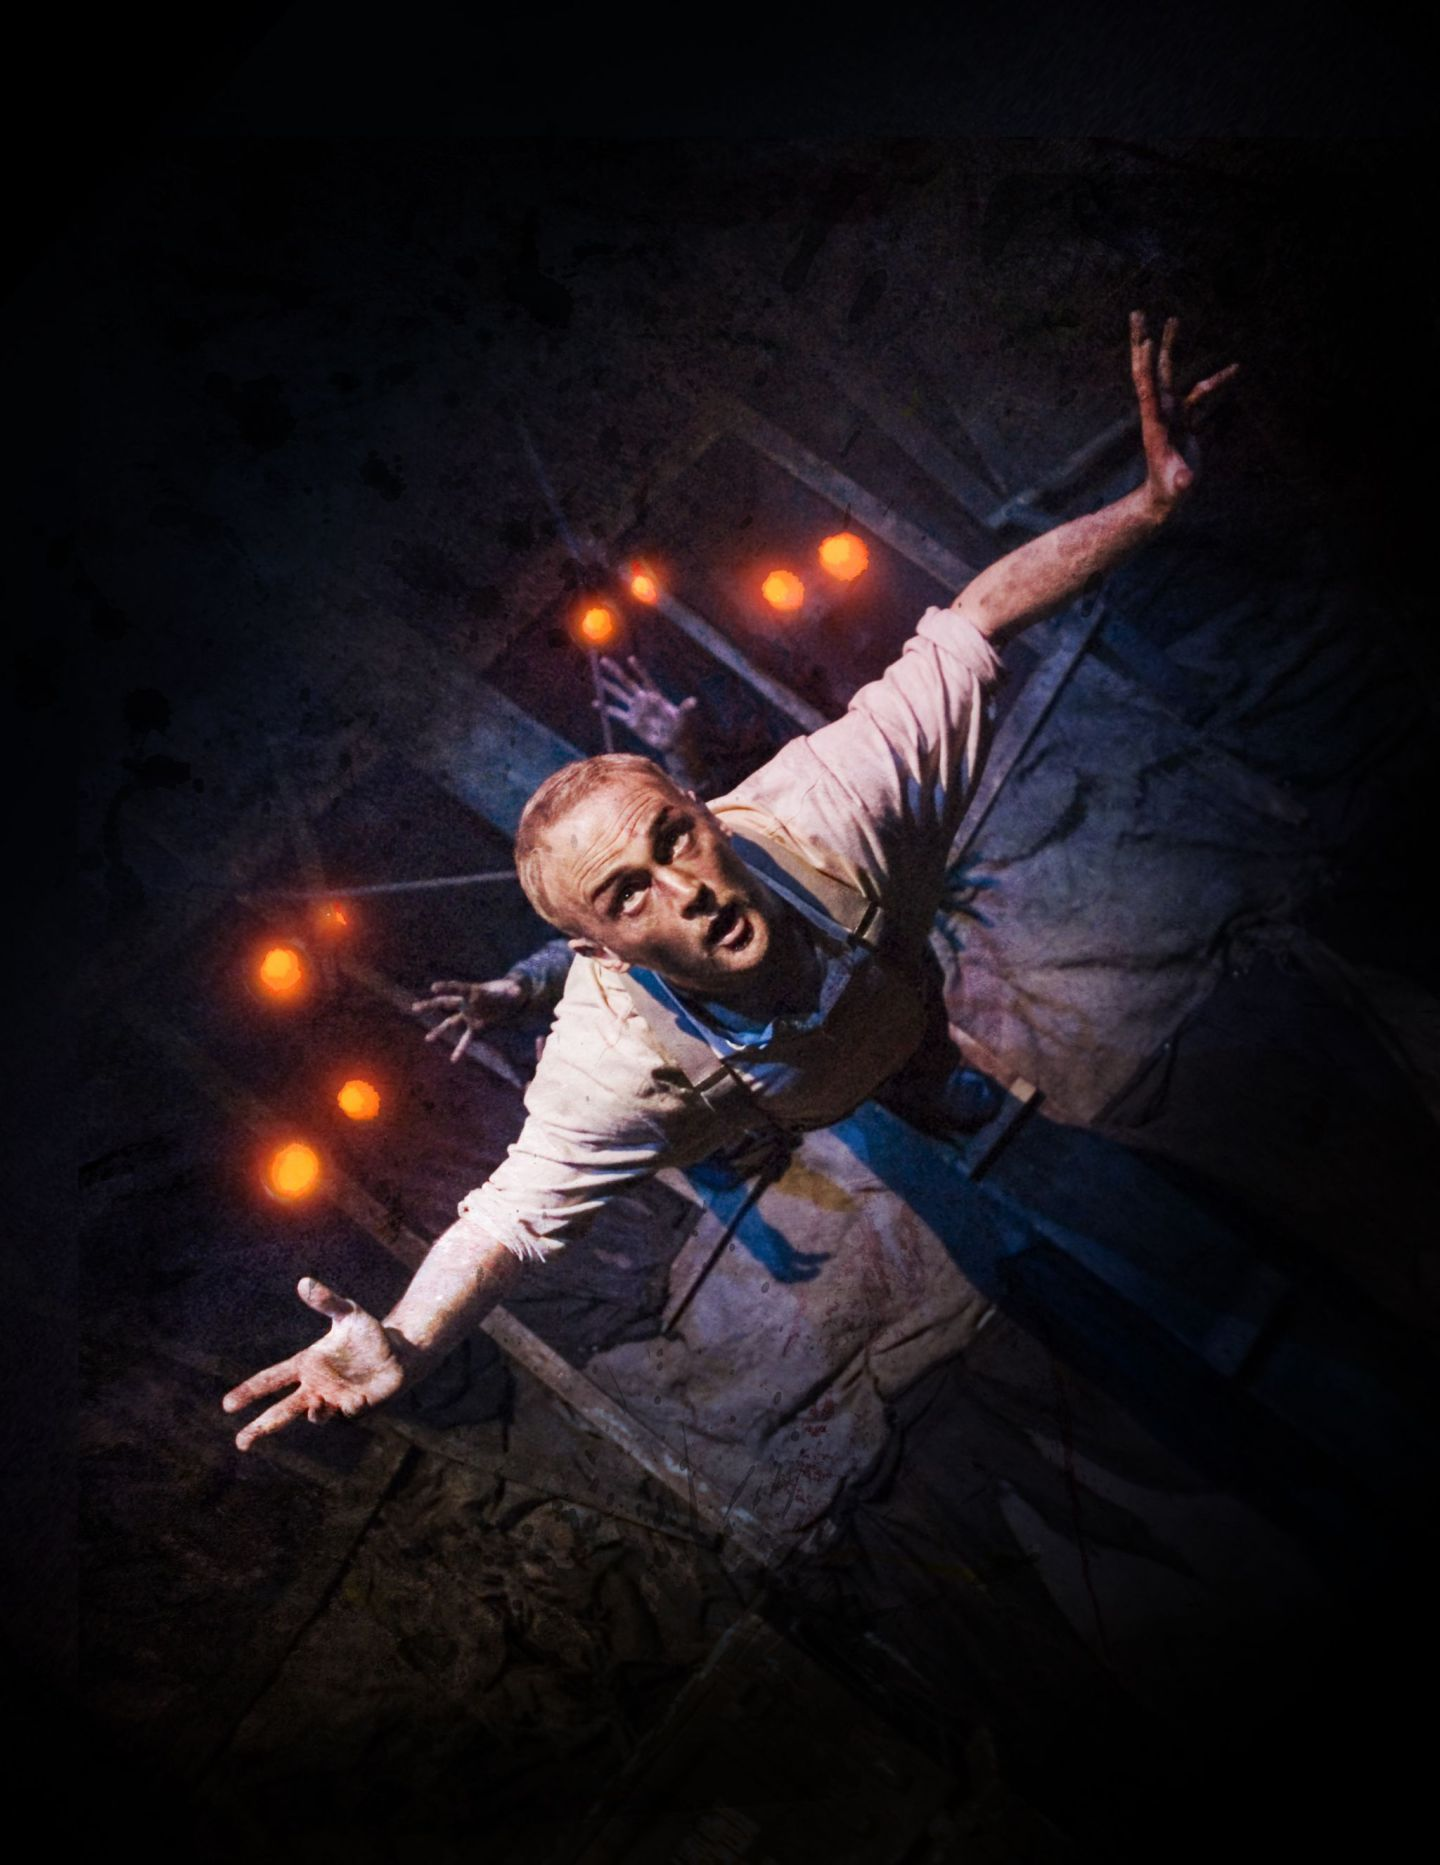 The Trench to play at Southwark Playhouse